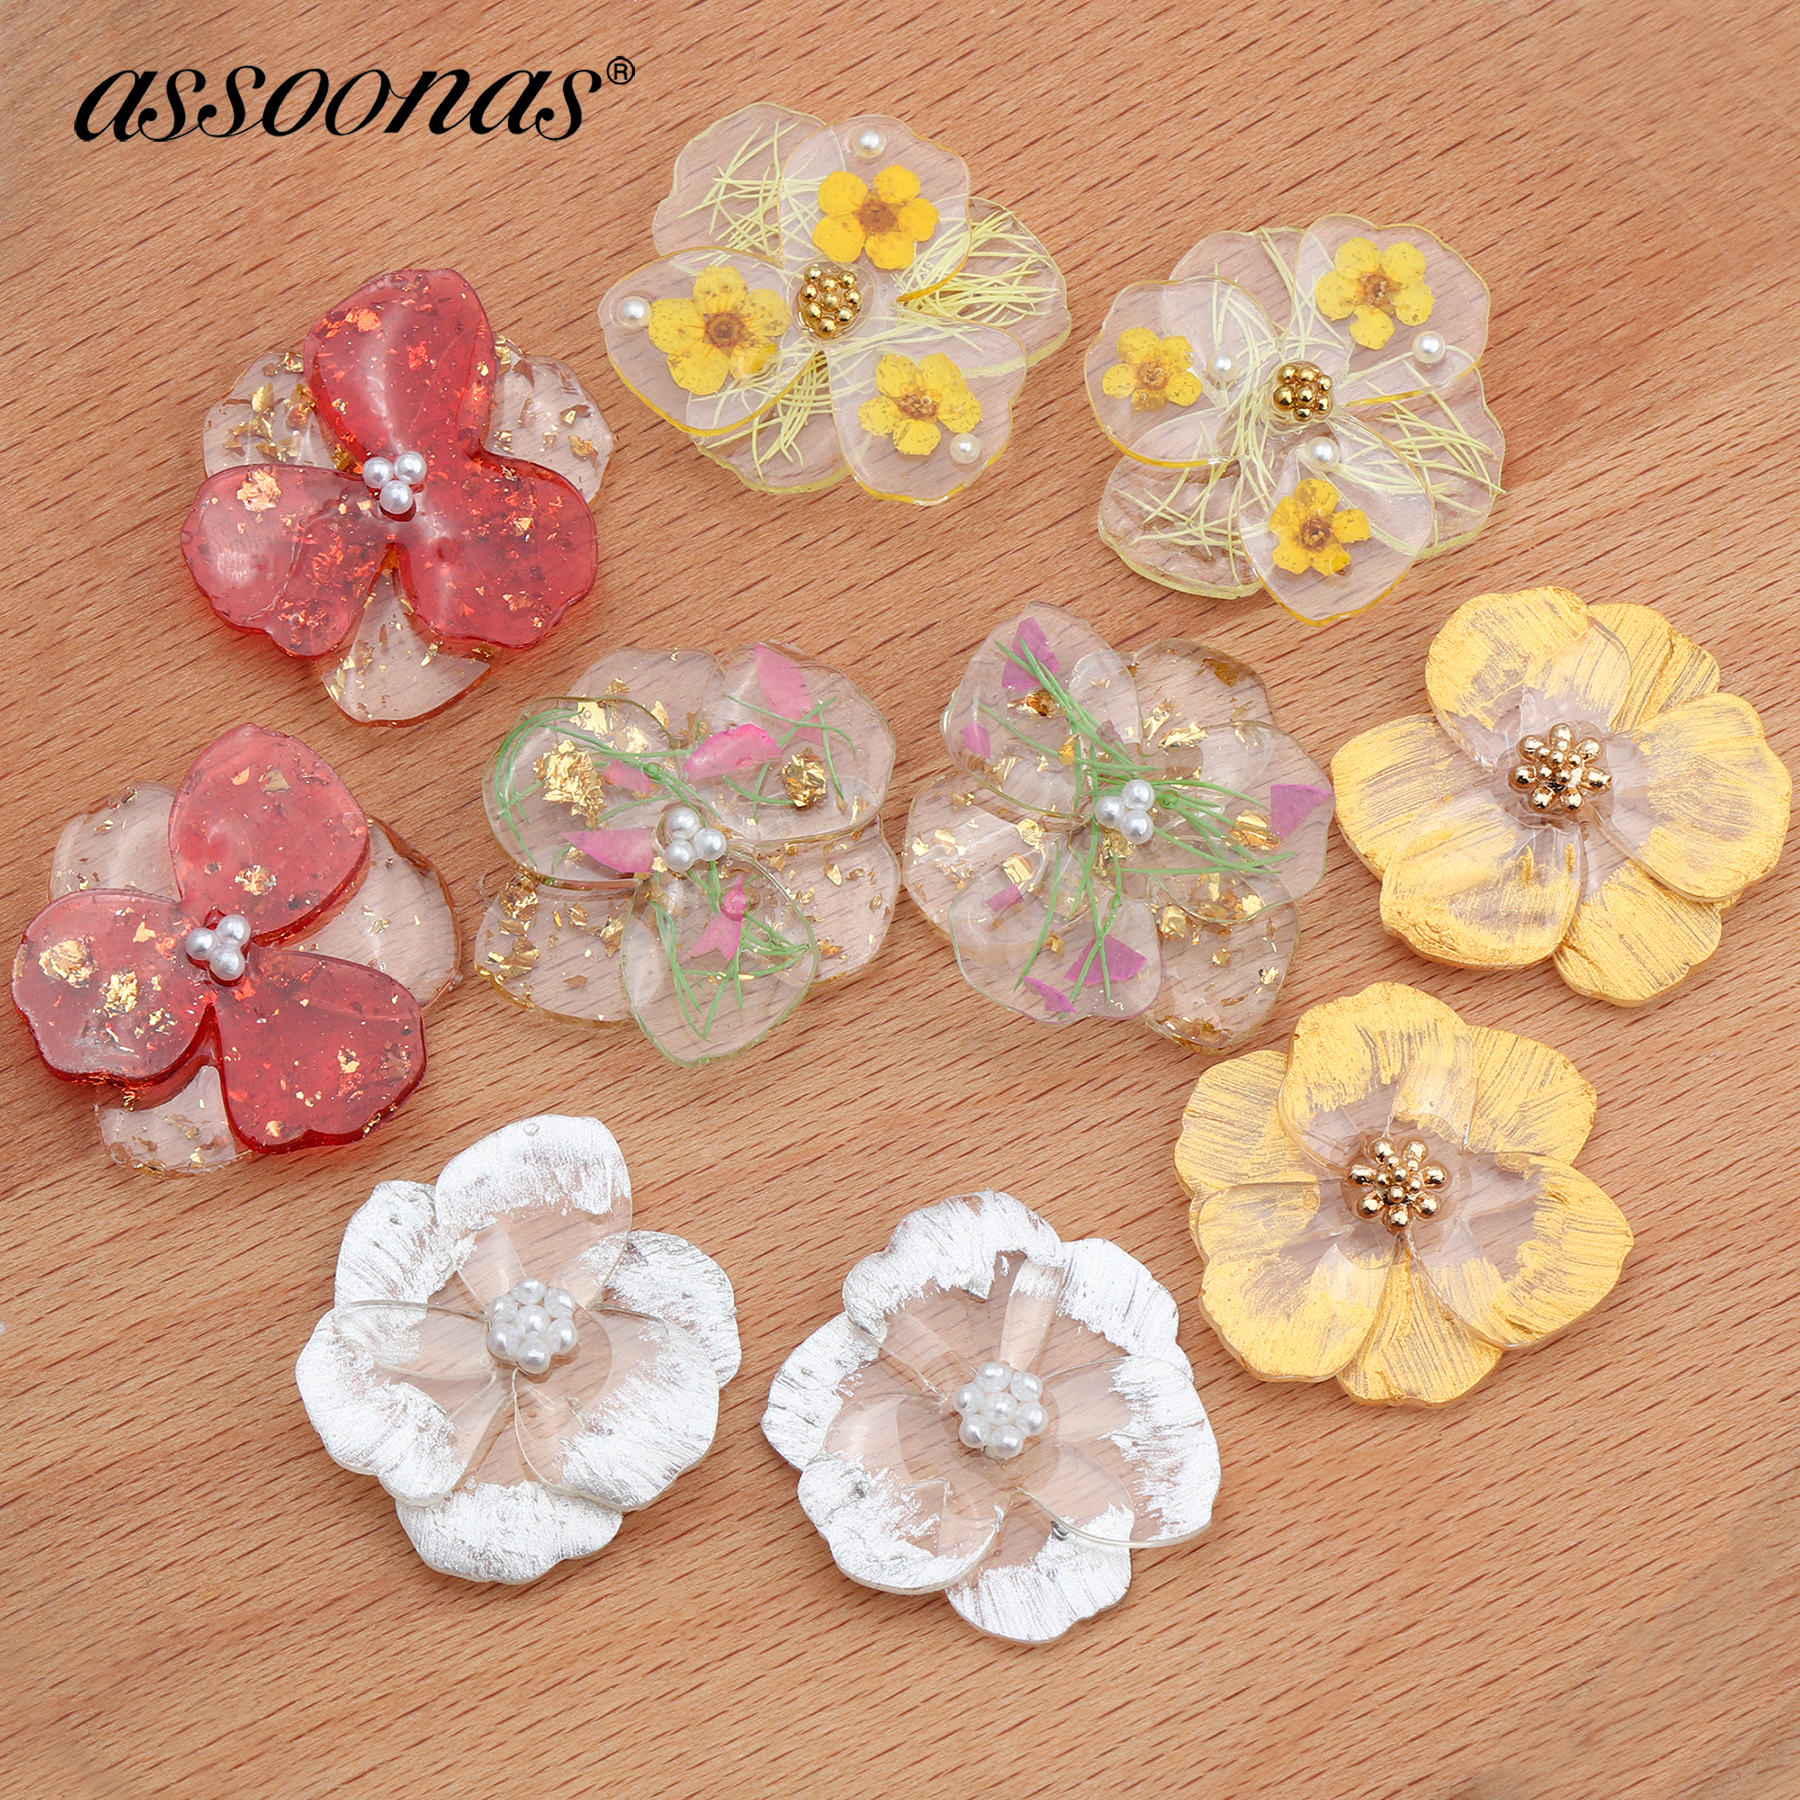 Assoonas M598,diy Resin,jewelry Accessories,flower Pendant,jewelry Making,charm,hand Made,jewelry Findings,diy Earrings,4pcs/lot